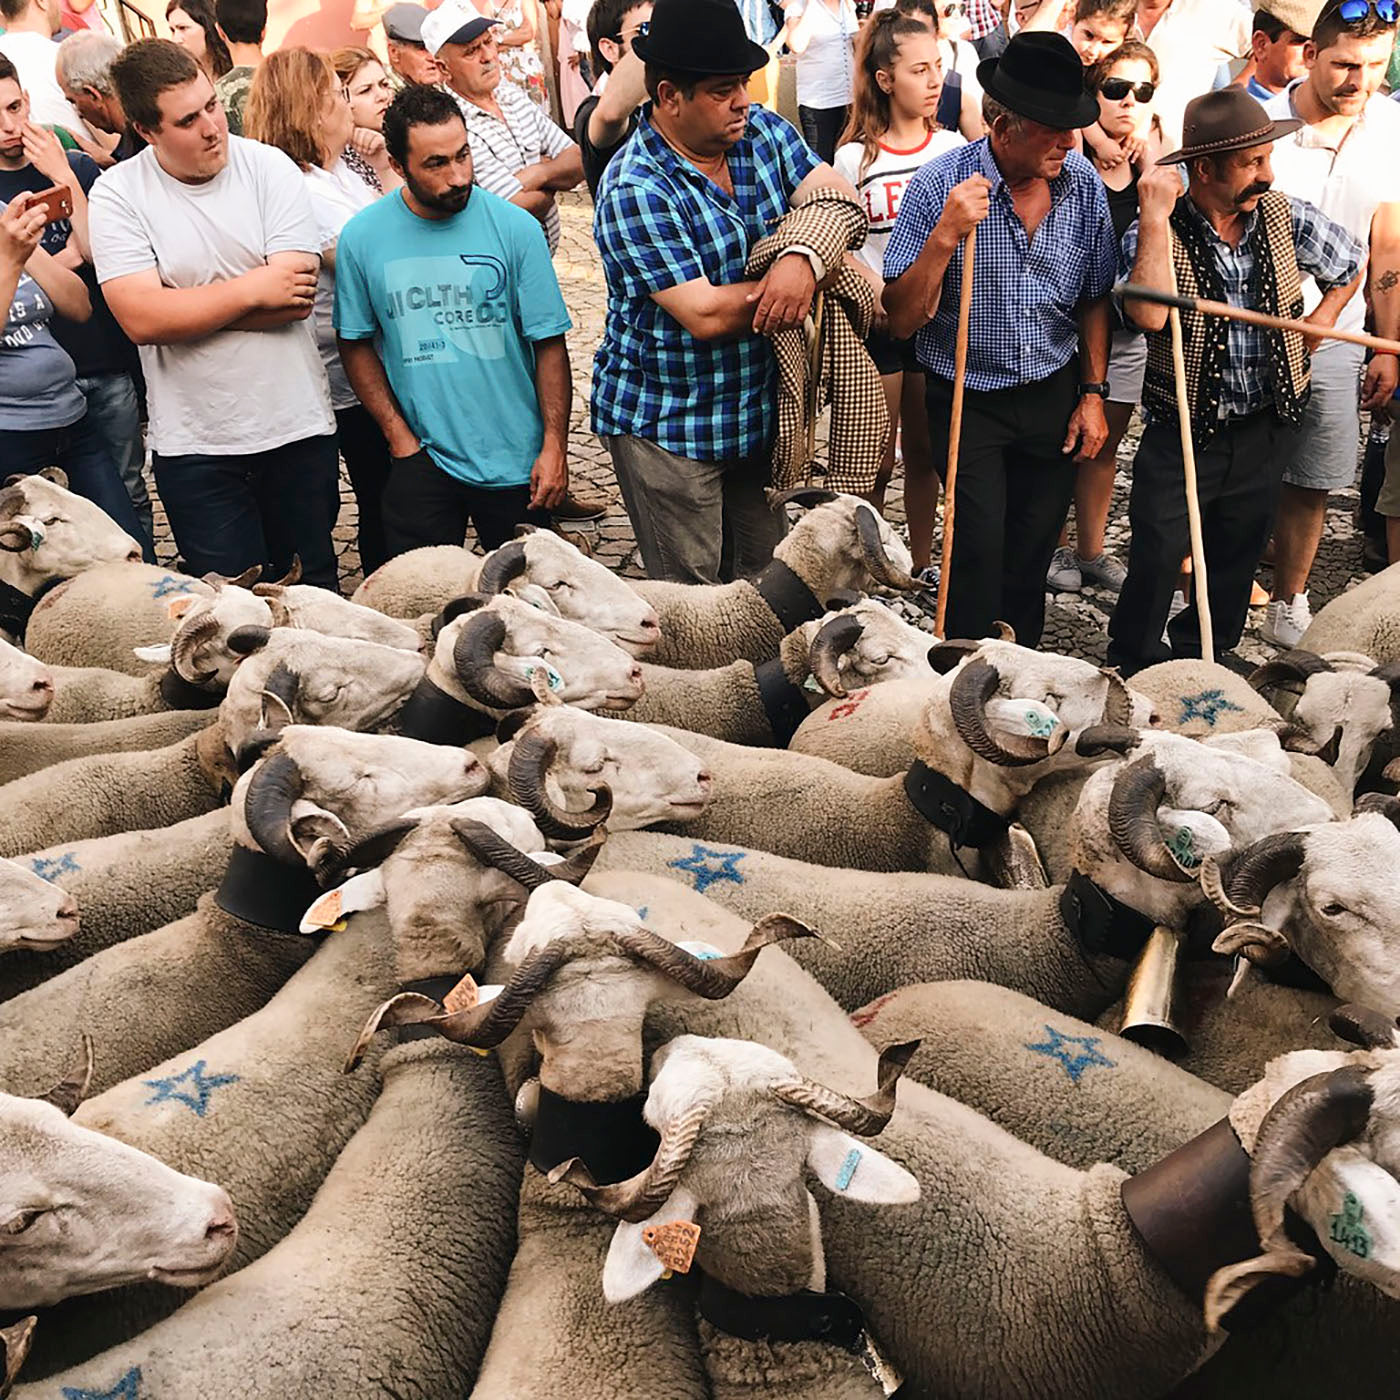 Sheep blessing ceremony in Portugal